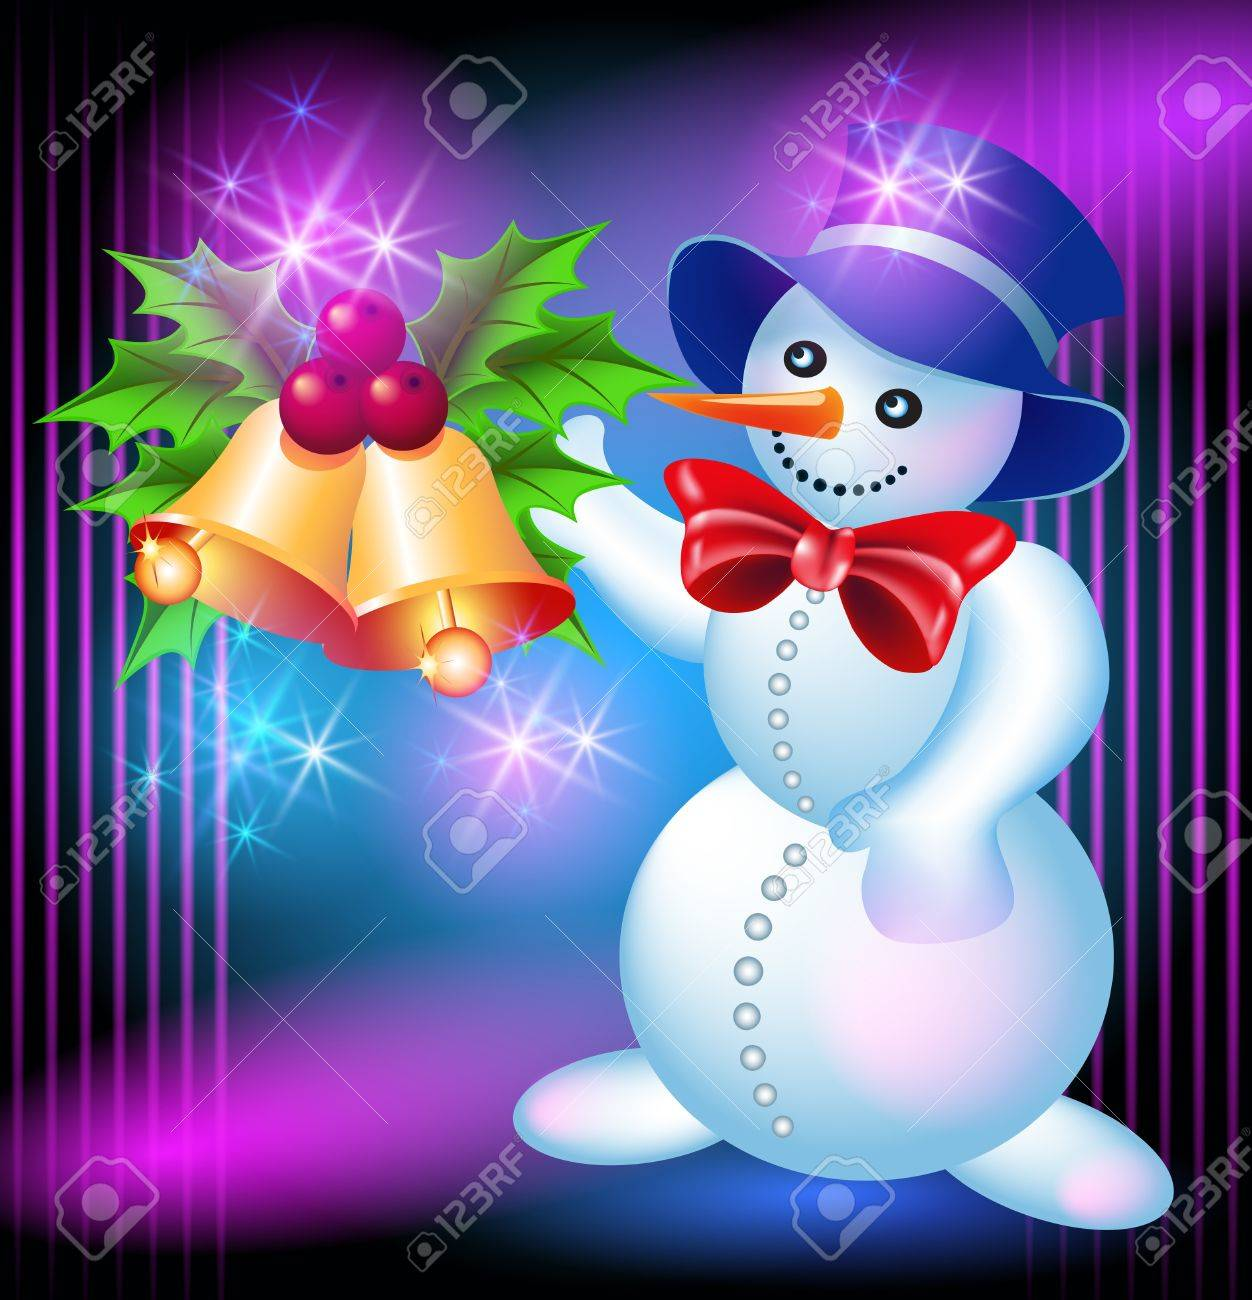 Christmas greetings card with Snowman and bells Stock Vector - 15983624